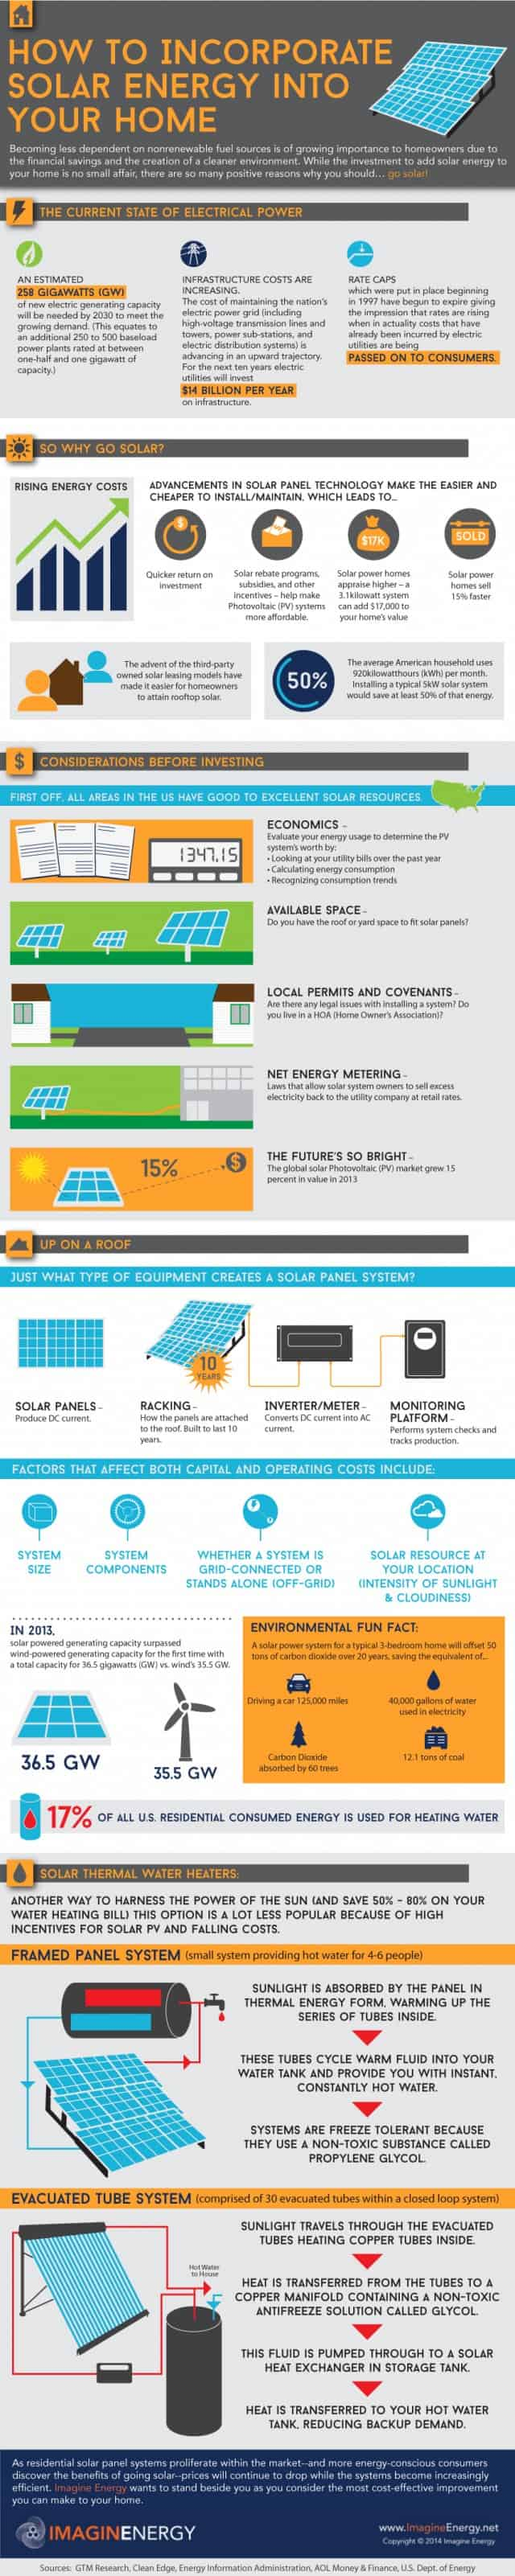 How to Incorporate Solar Energy into Your Home